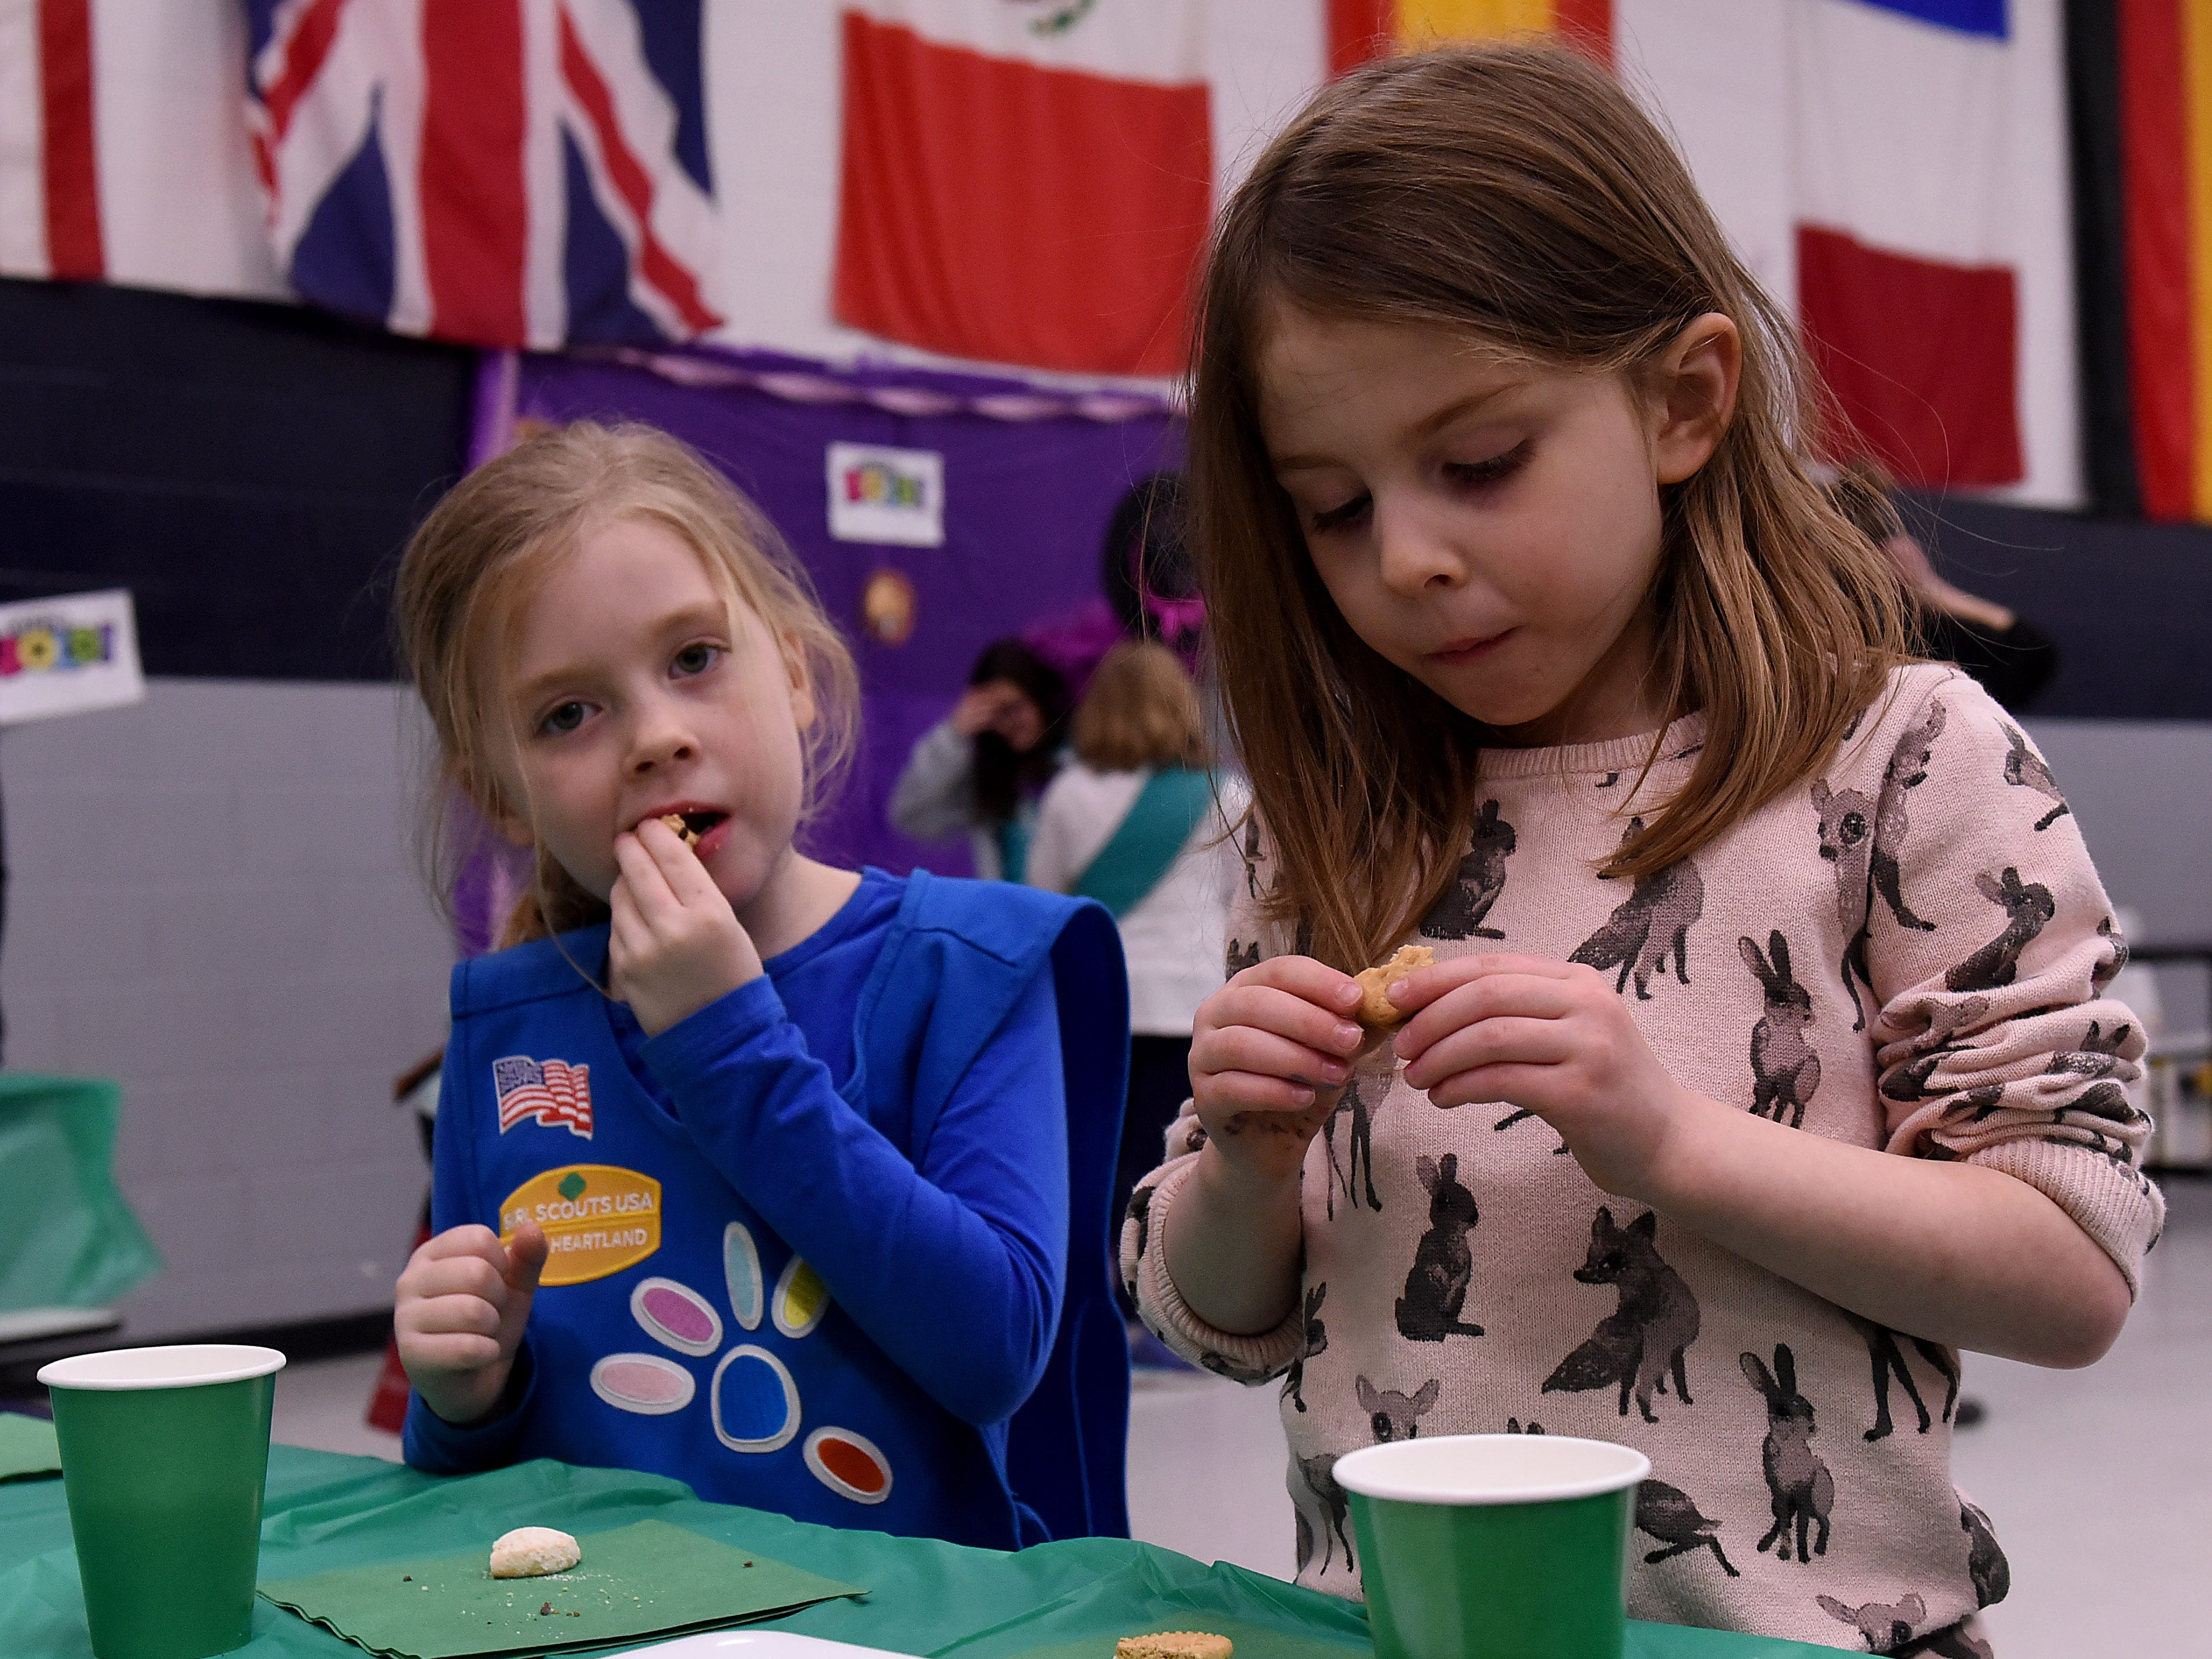 Daisy Girl Scouts Katie Clifford and Fiona Phennicie sample cookies and try to decide on their favorite during a cookie rally at Granville Elementary on Friday, Jan. 11, 2019. Scouts meet to sample cookies, practice making change and calculating cost, and other entrepreneur skills during the event to start the Girl Scout cookie season. The gathering of Granville area troops selected the new S'mores cookie as their favorite in a poll. Local scouts will be taking orders through January 27th and then will be selling at booths locally through March 24.